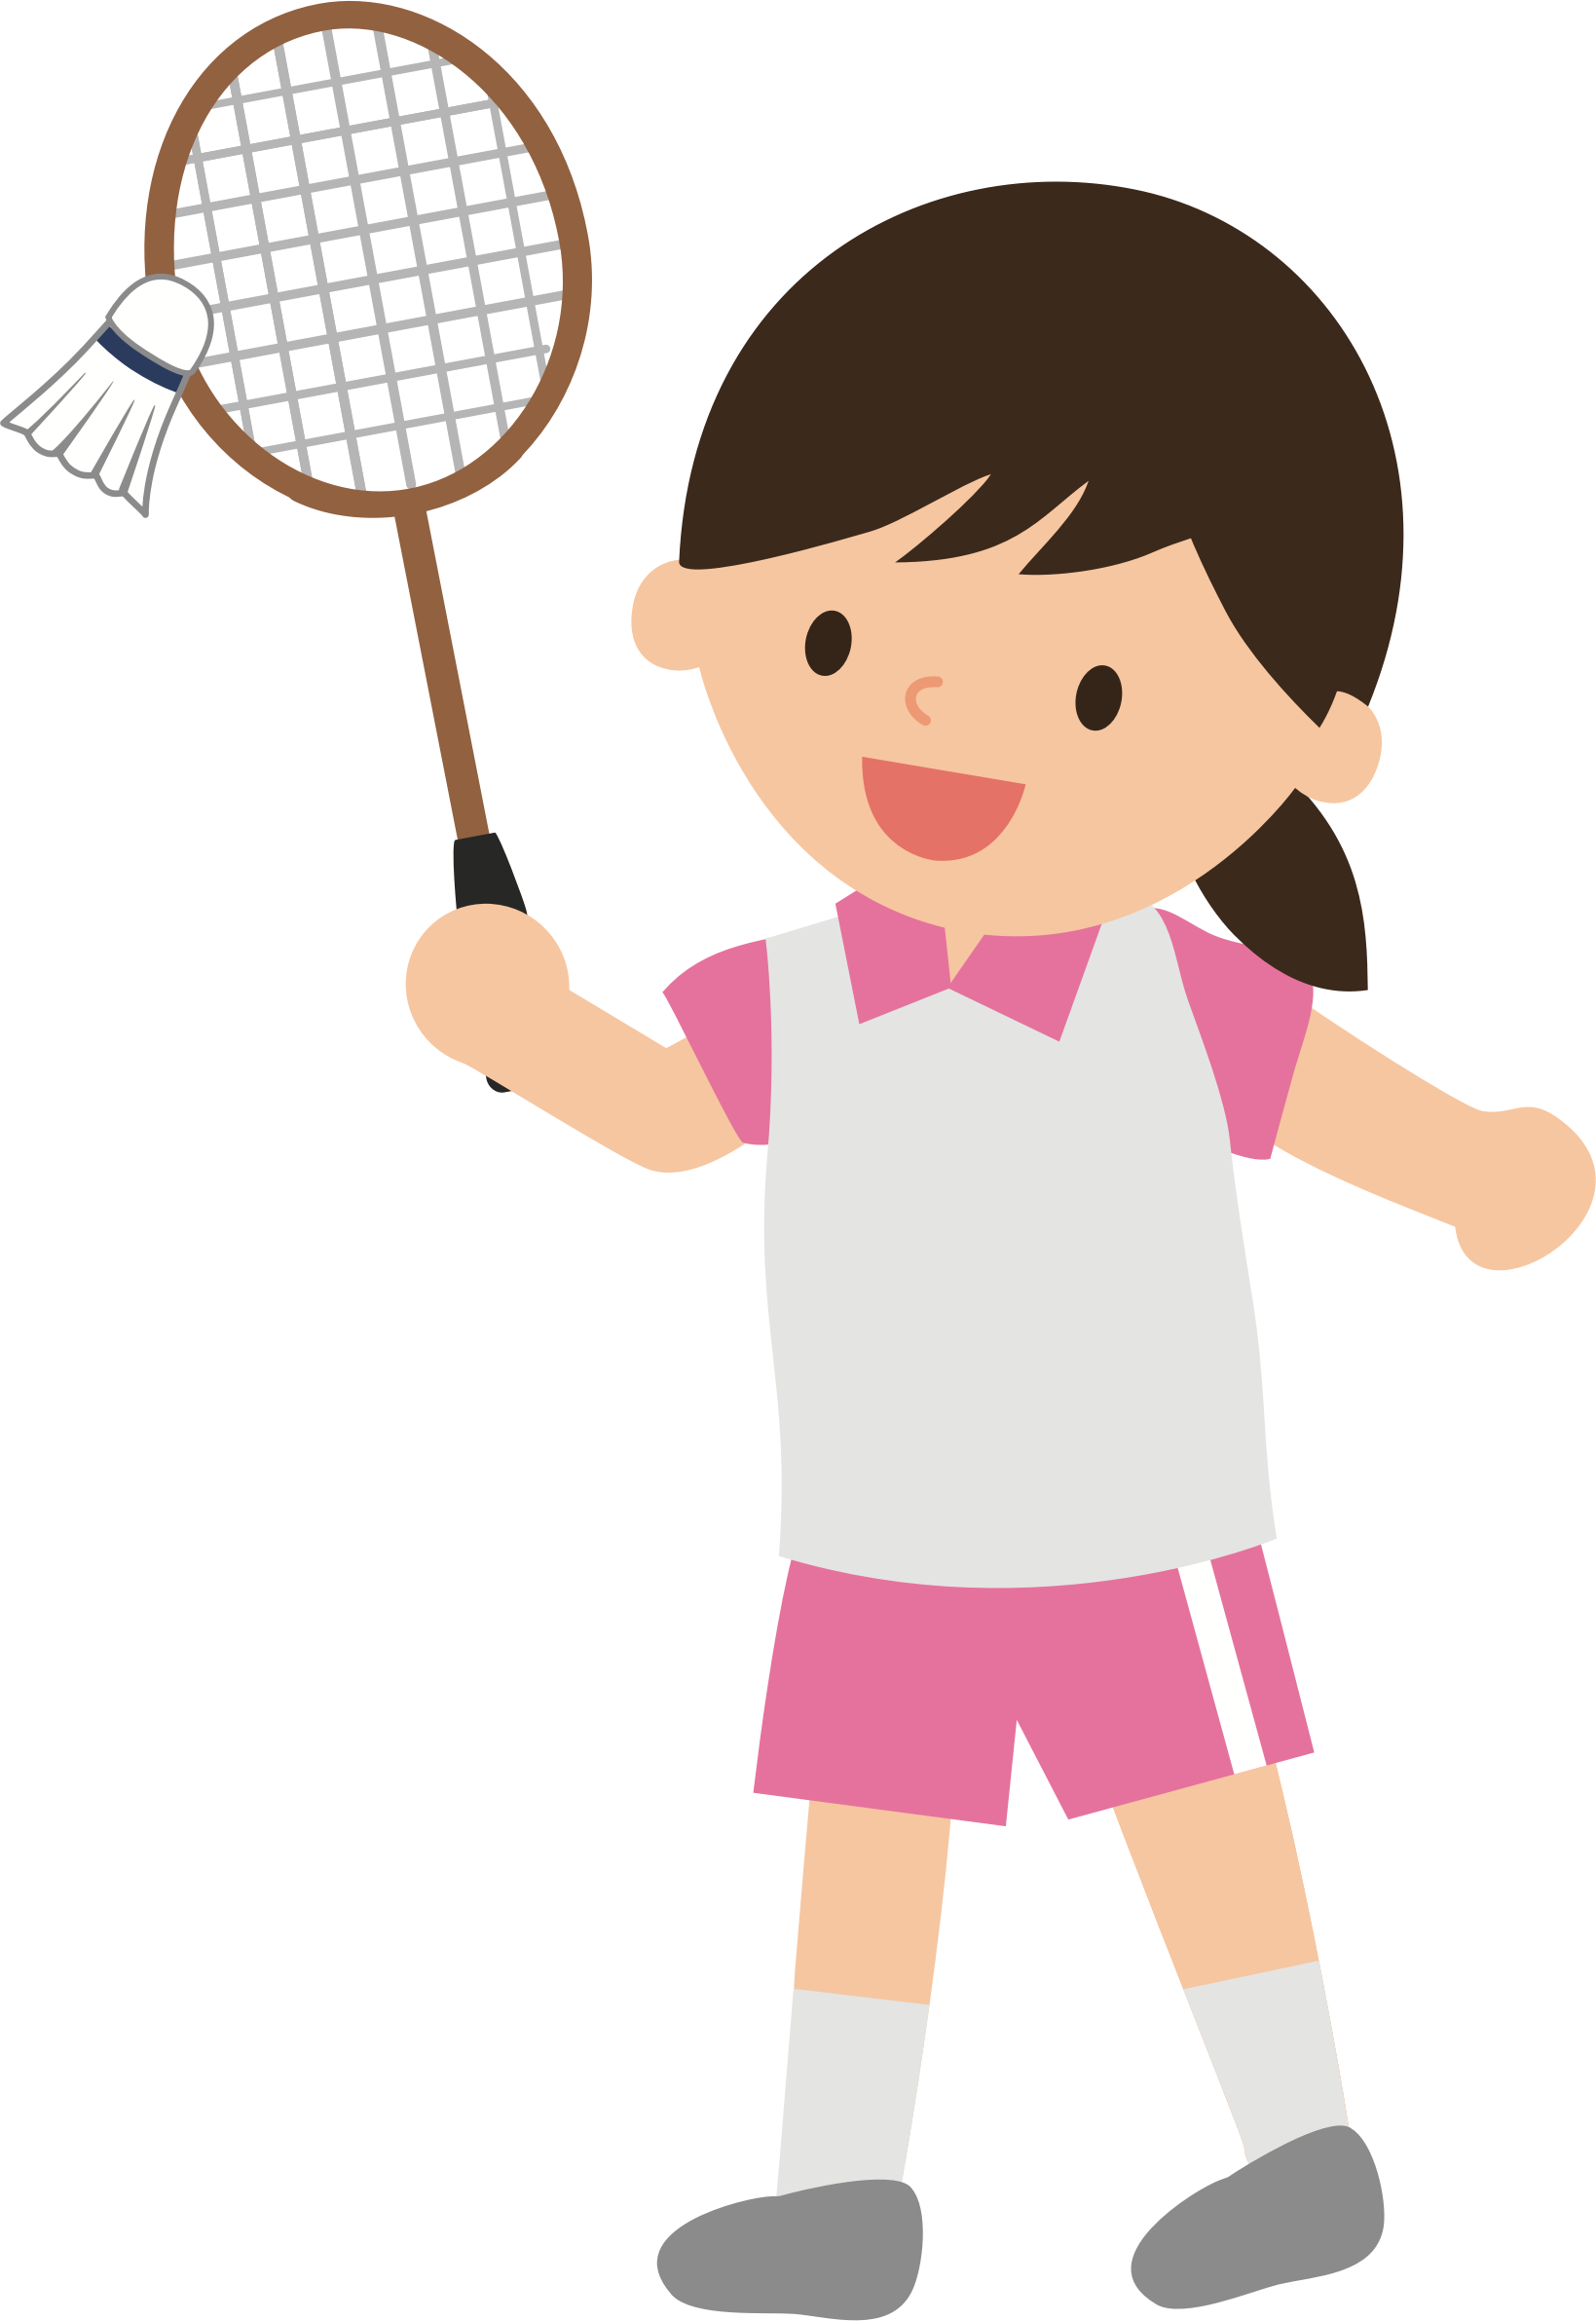 Clipart woman badminton, Clipart woman badminton Transparent.